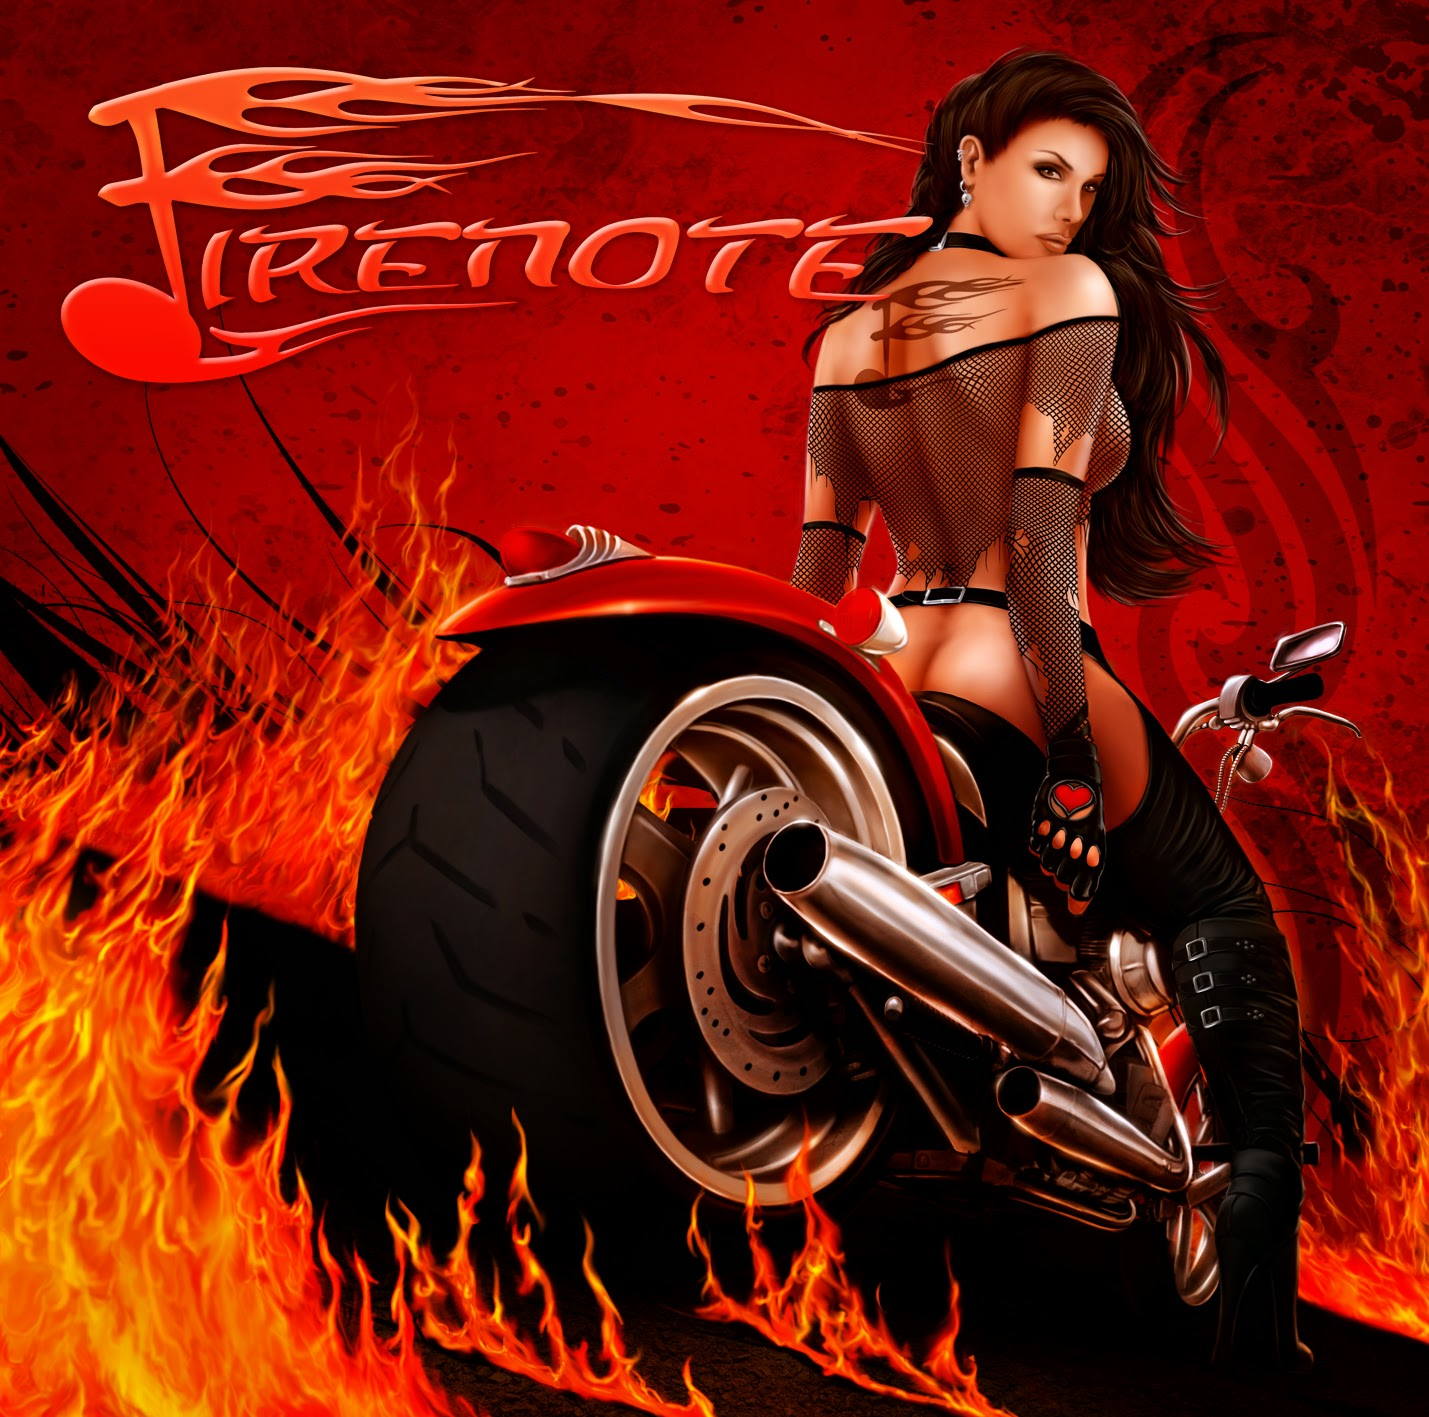 heavy metal album cover motorbike woman